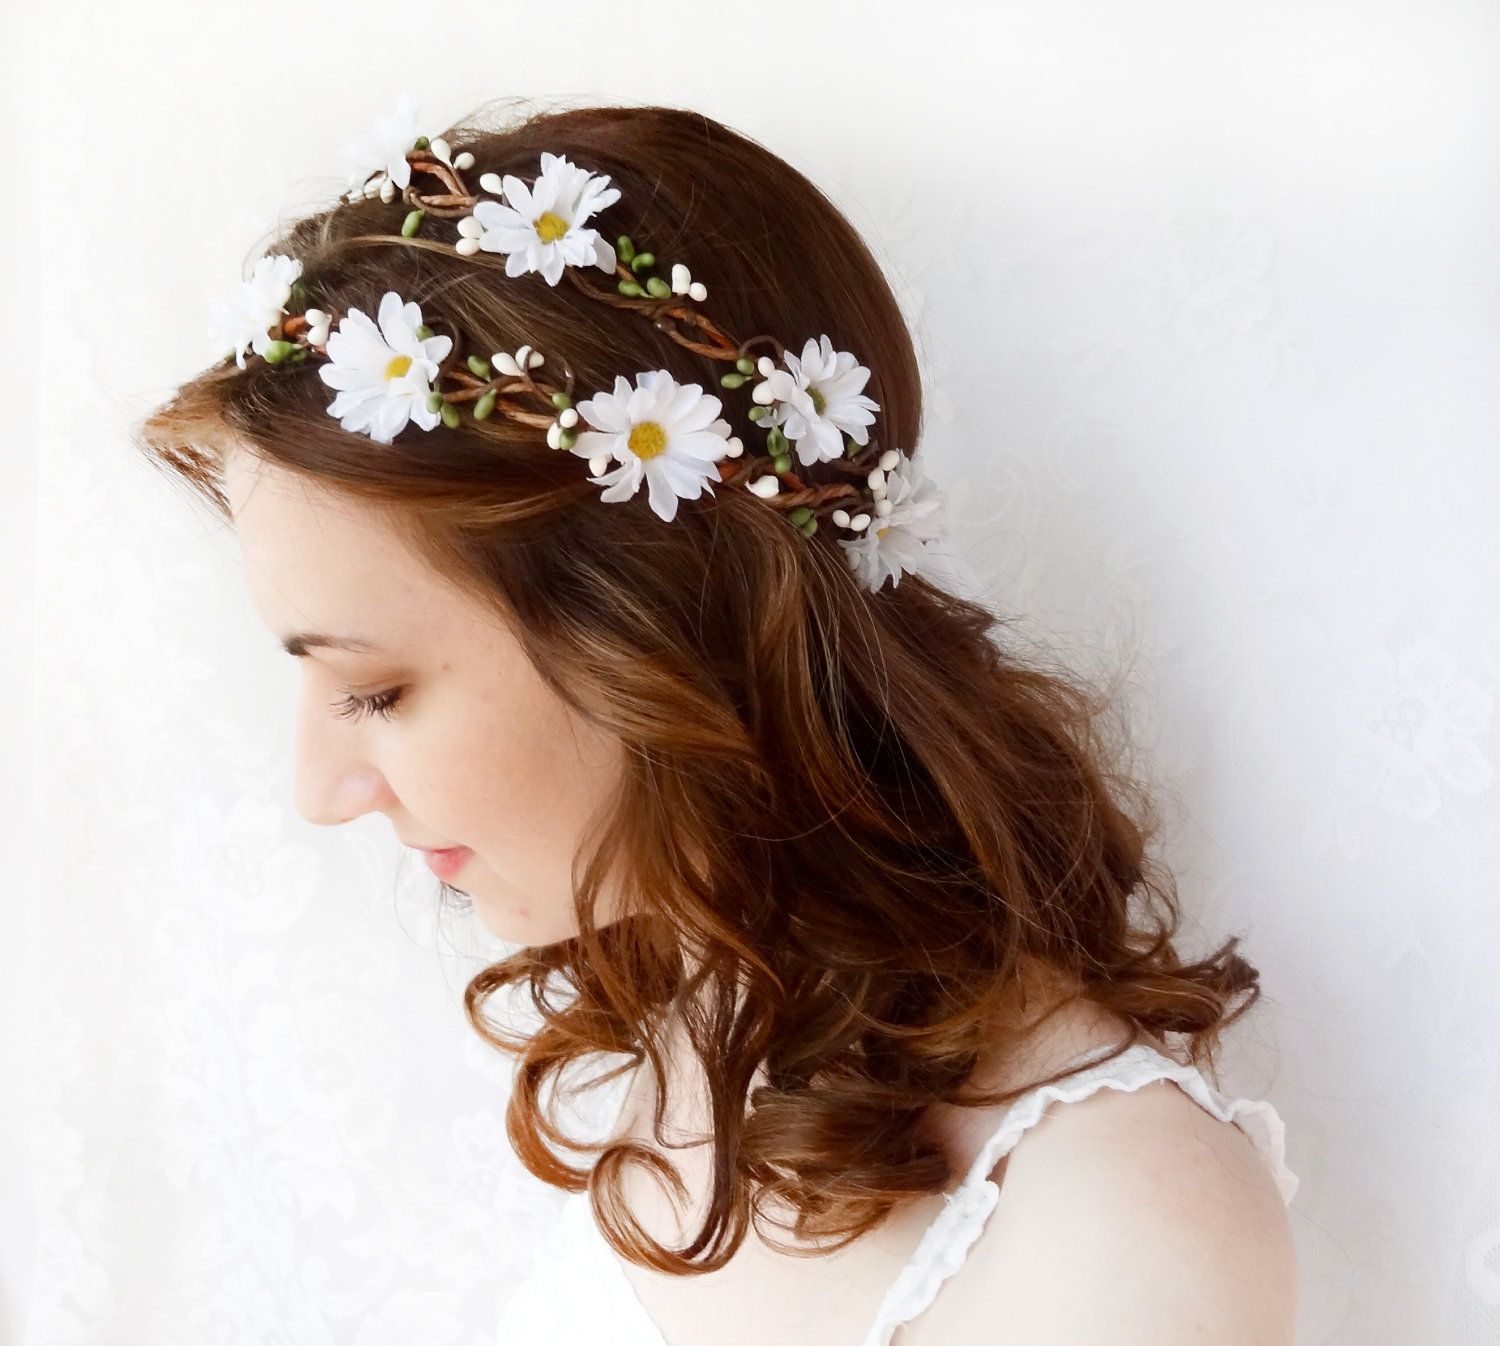 flower crown wedding, daisy headband, daisy flower crown, bridal